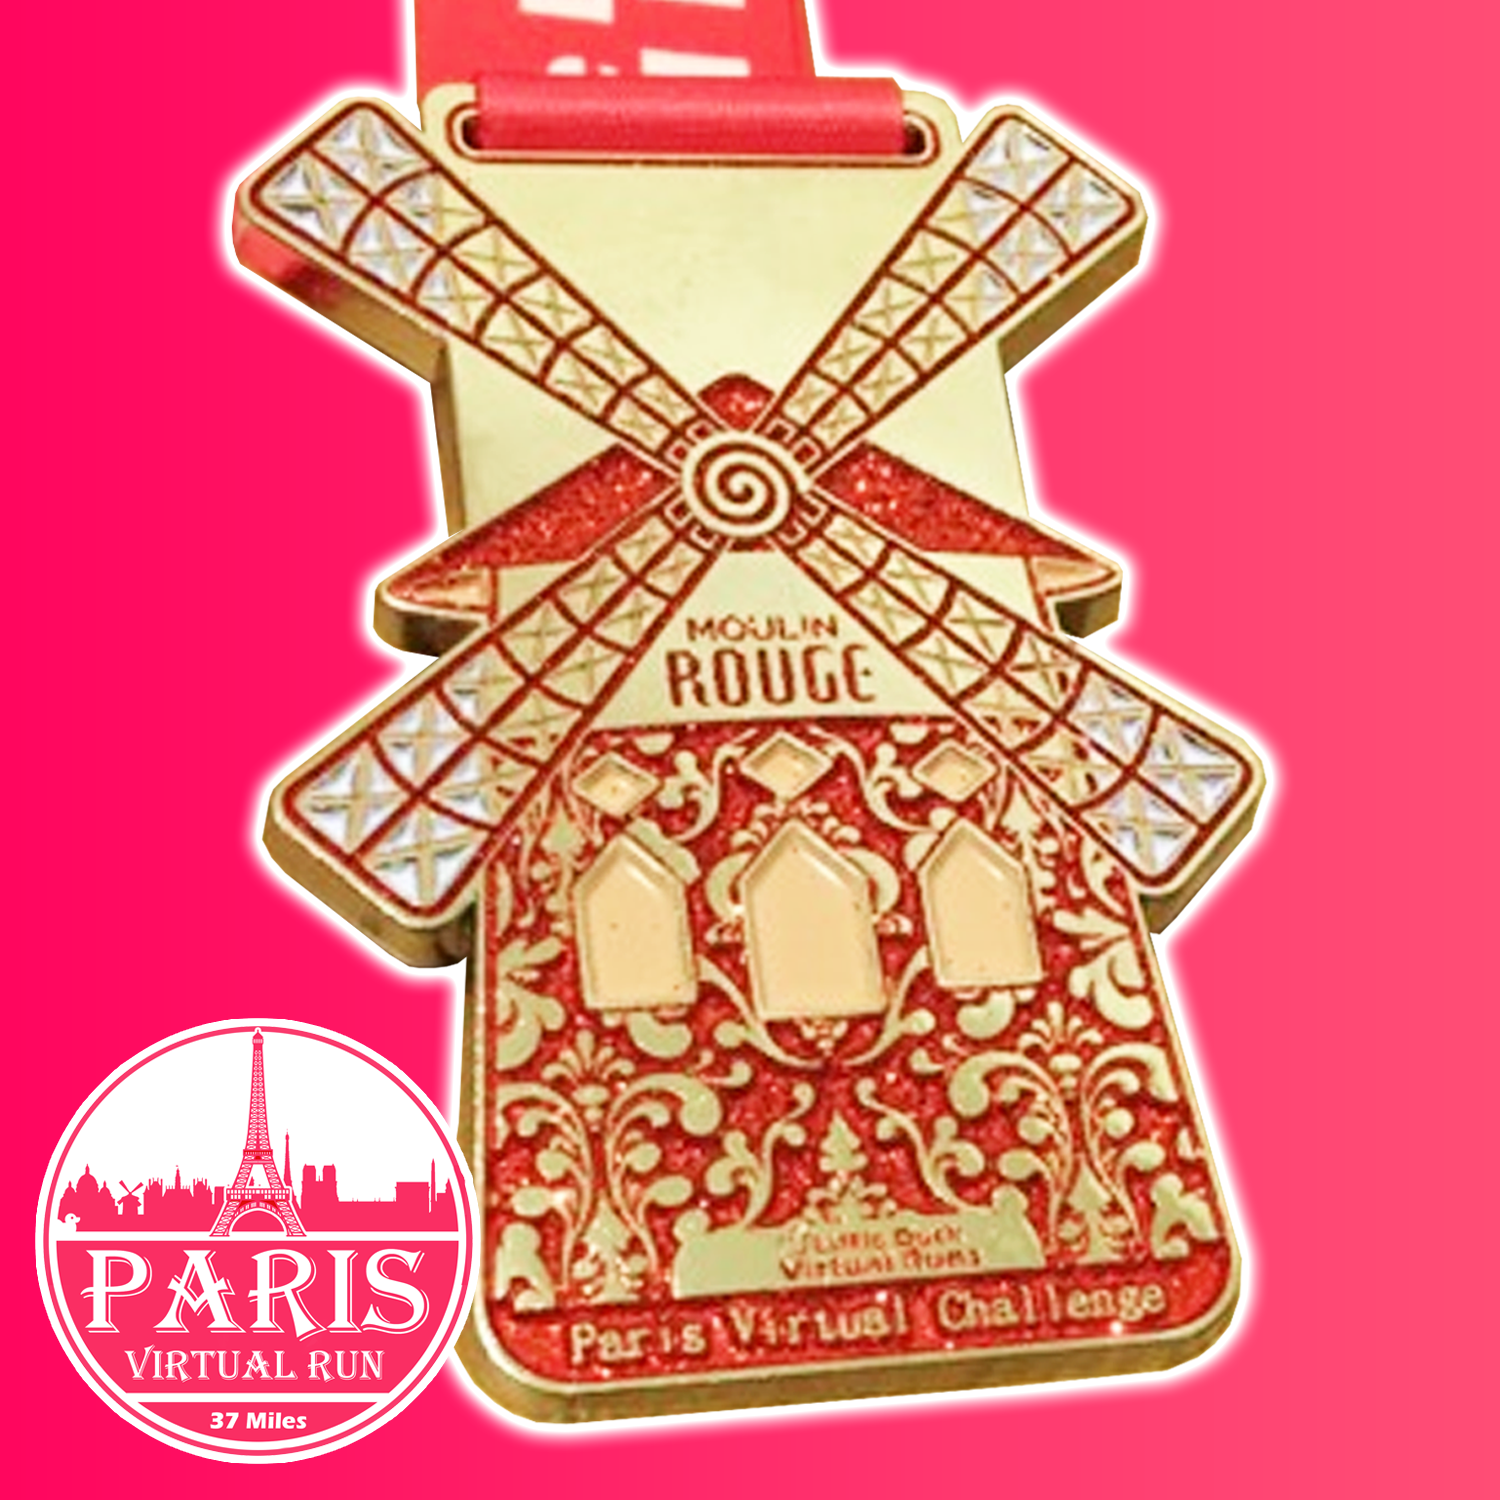 Paris 26.2 Mile Virtual Run ( you don't have to do the 26.2 miles in one go, phew!)